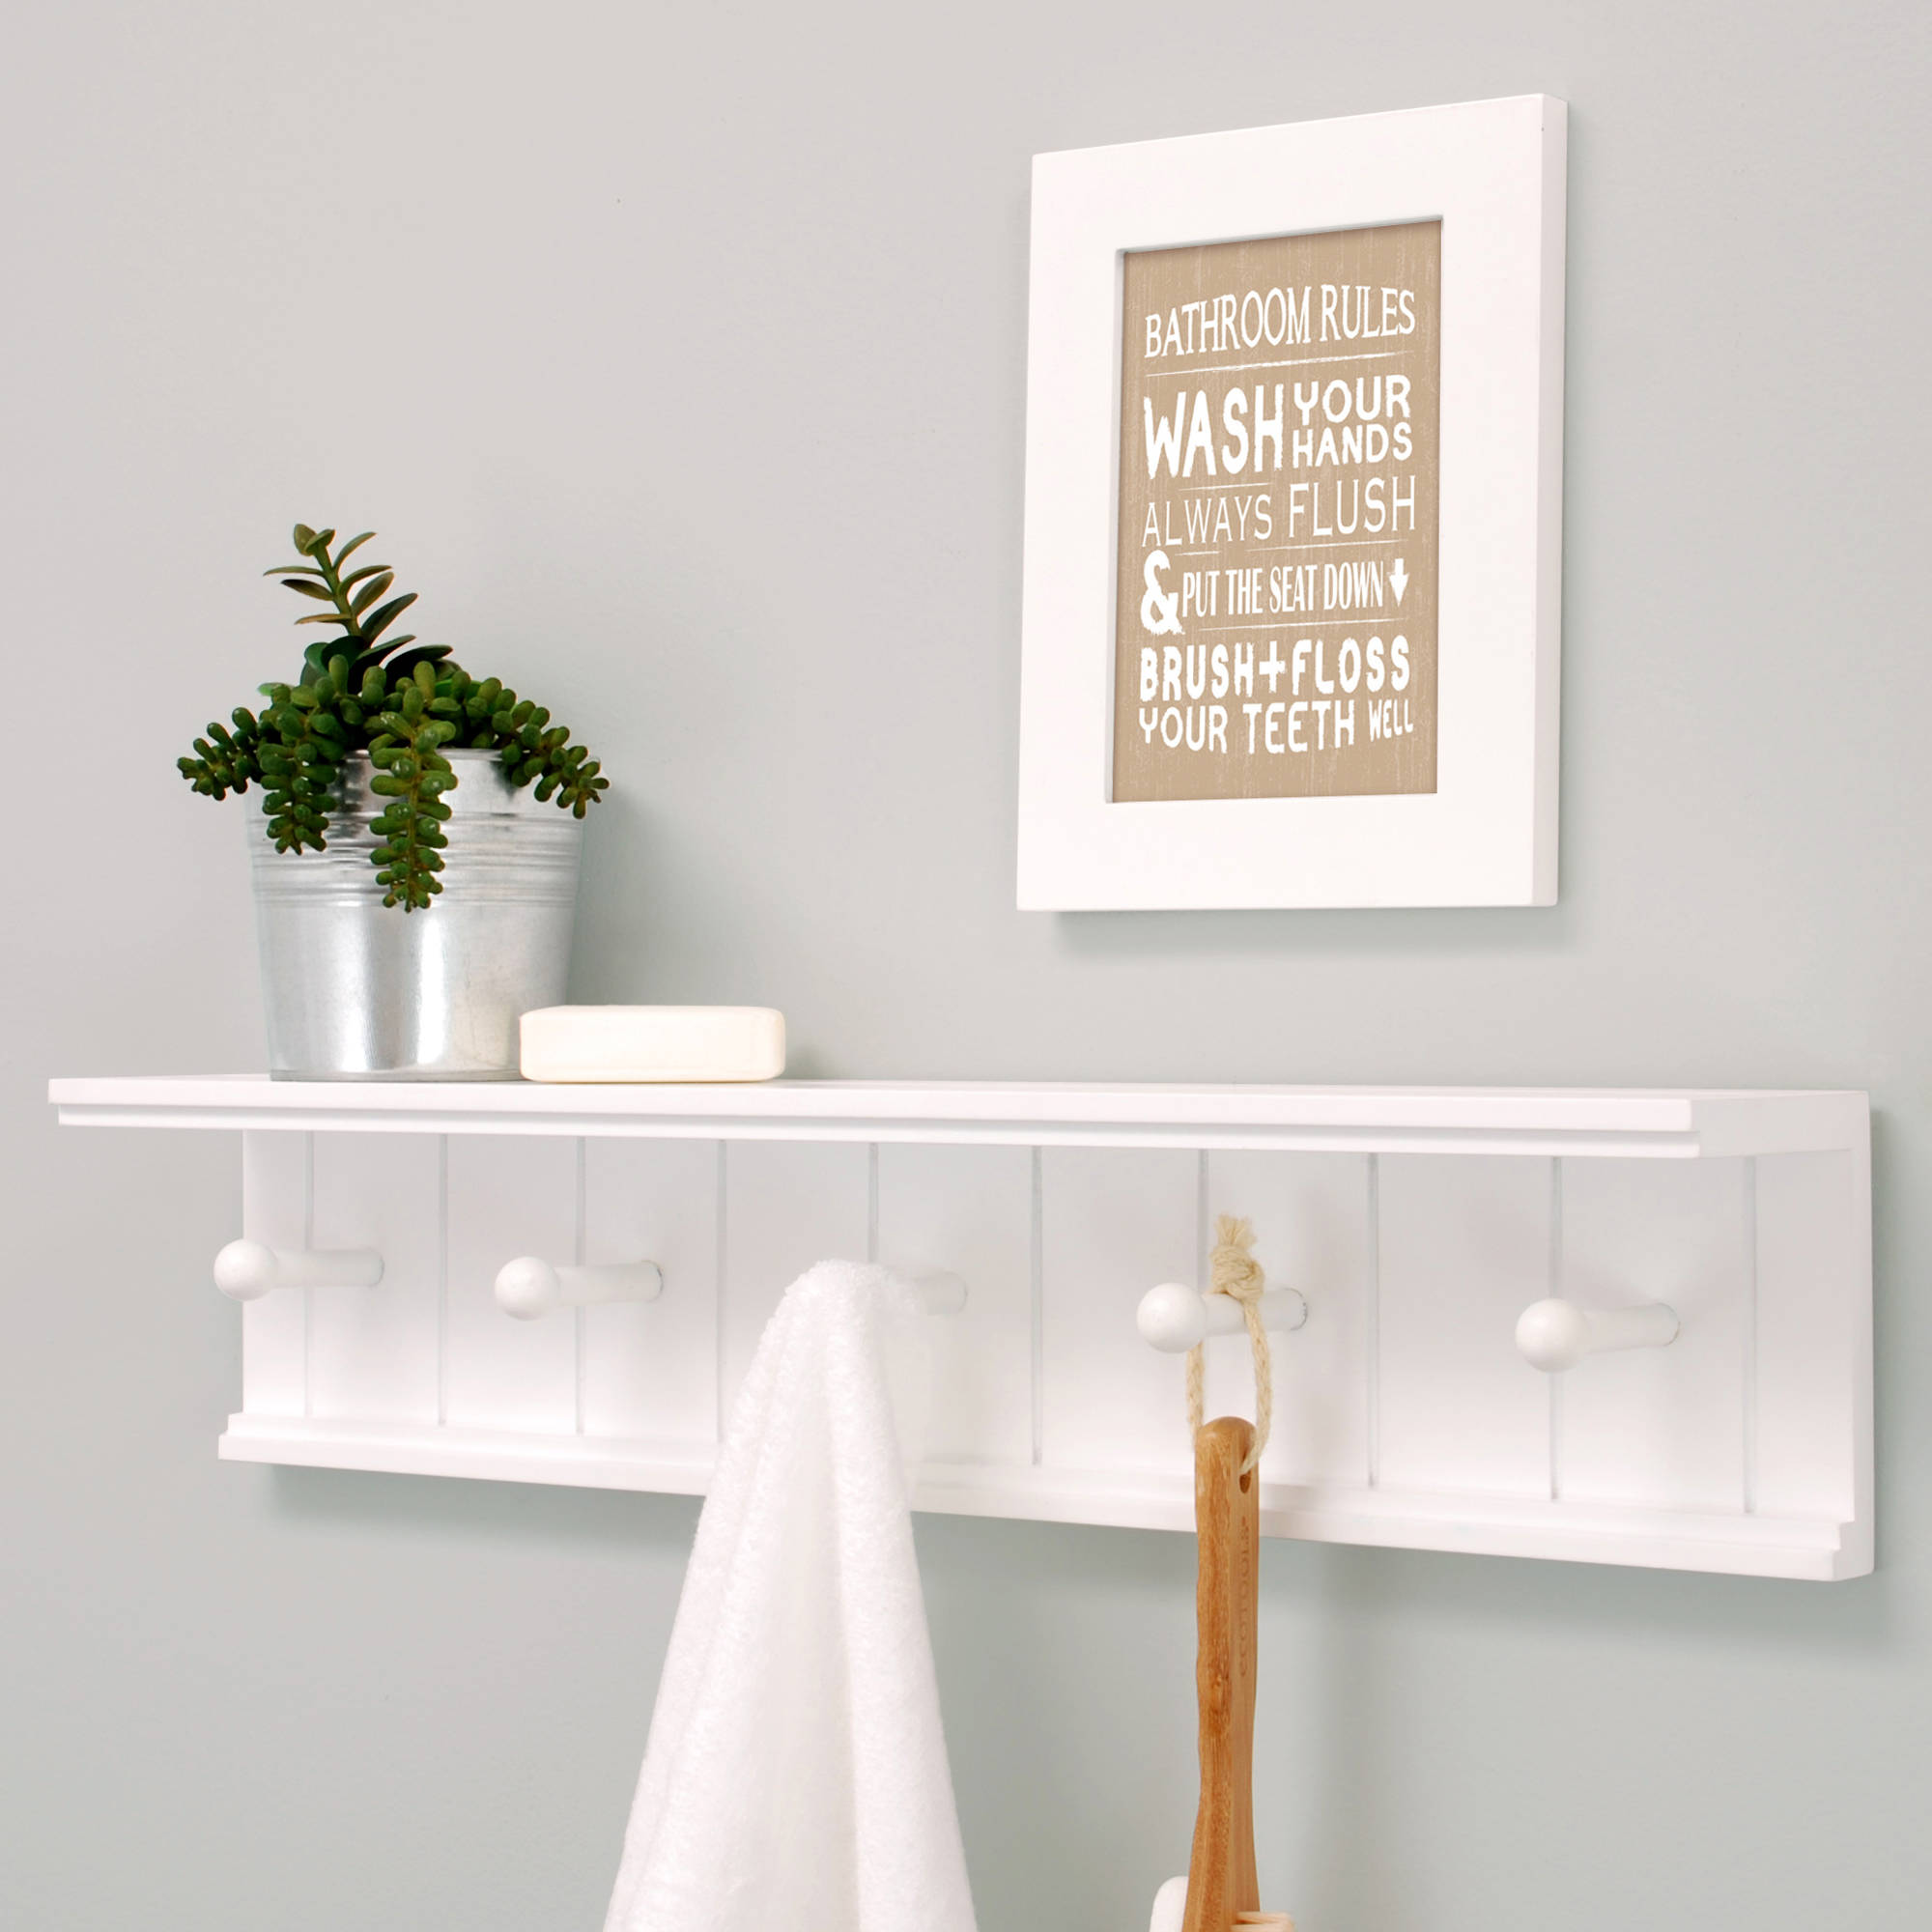 Wall shelves kiera grace kian 24 wall shelf with 5 pegs white amipublicfo Gallery